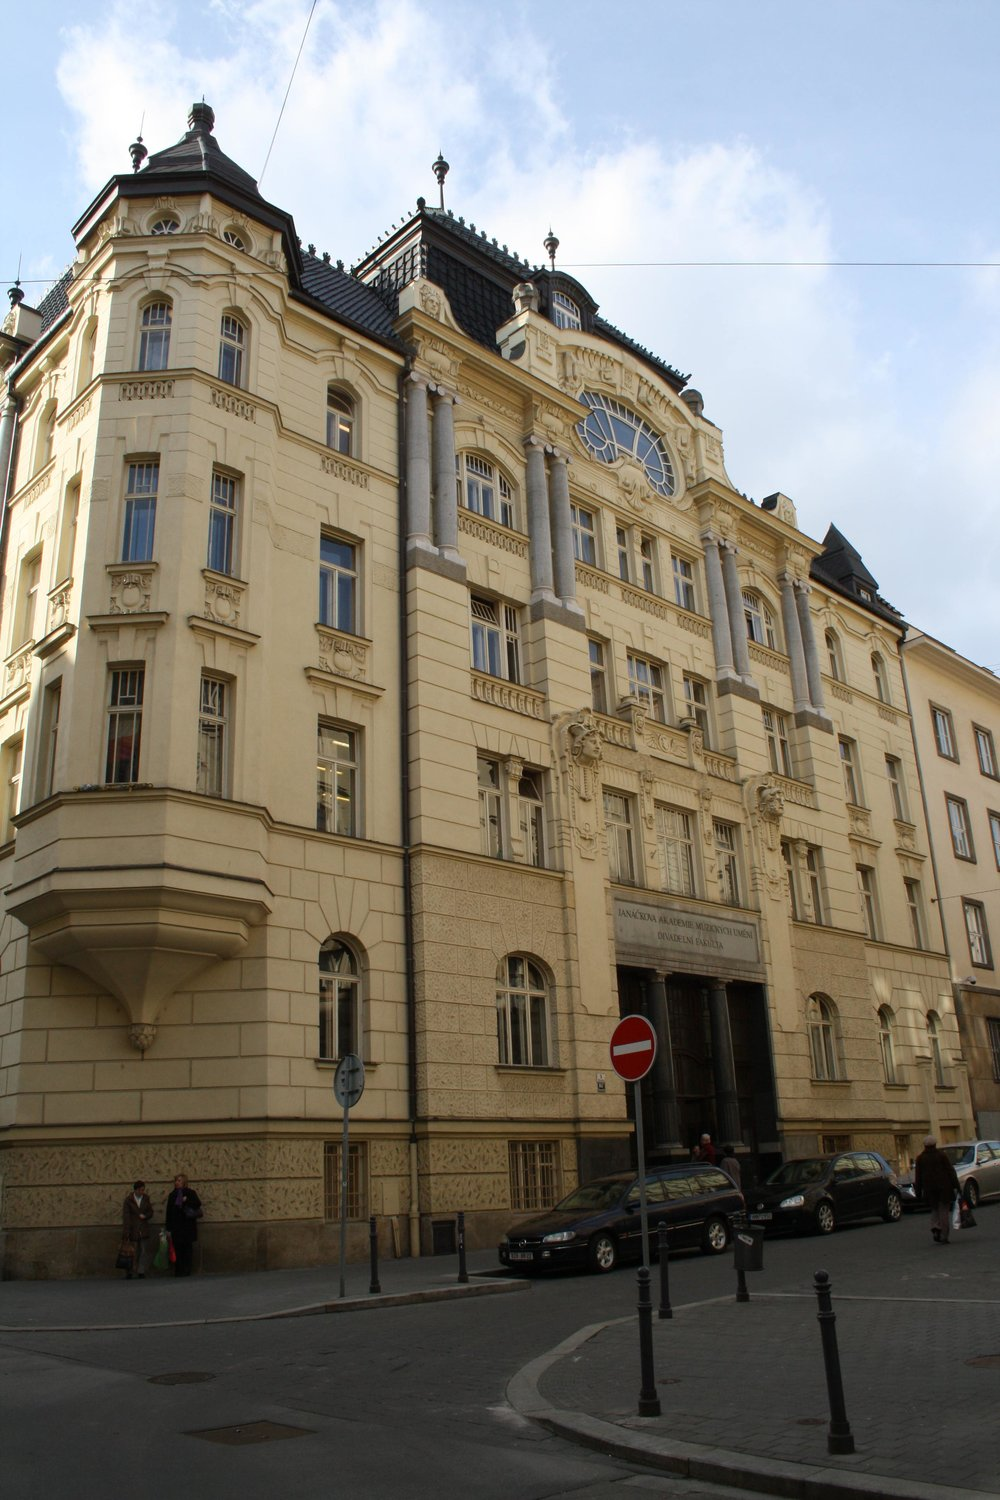 Building_of_Faculty_of_Theatre_of_Janáček_Academy_of_Music_and_Performing_Arts_in_Brno.jpg